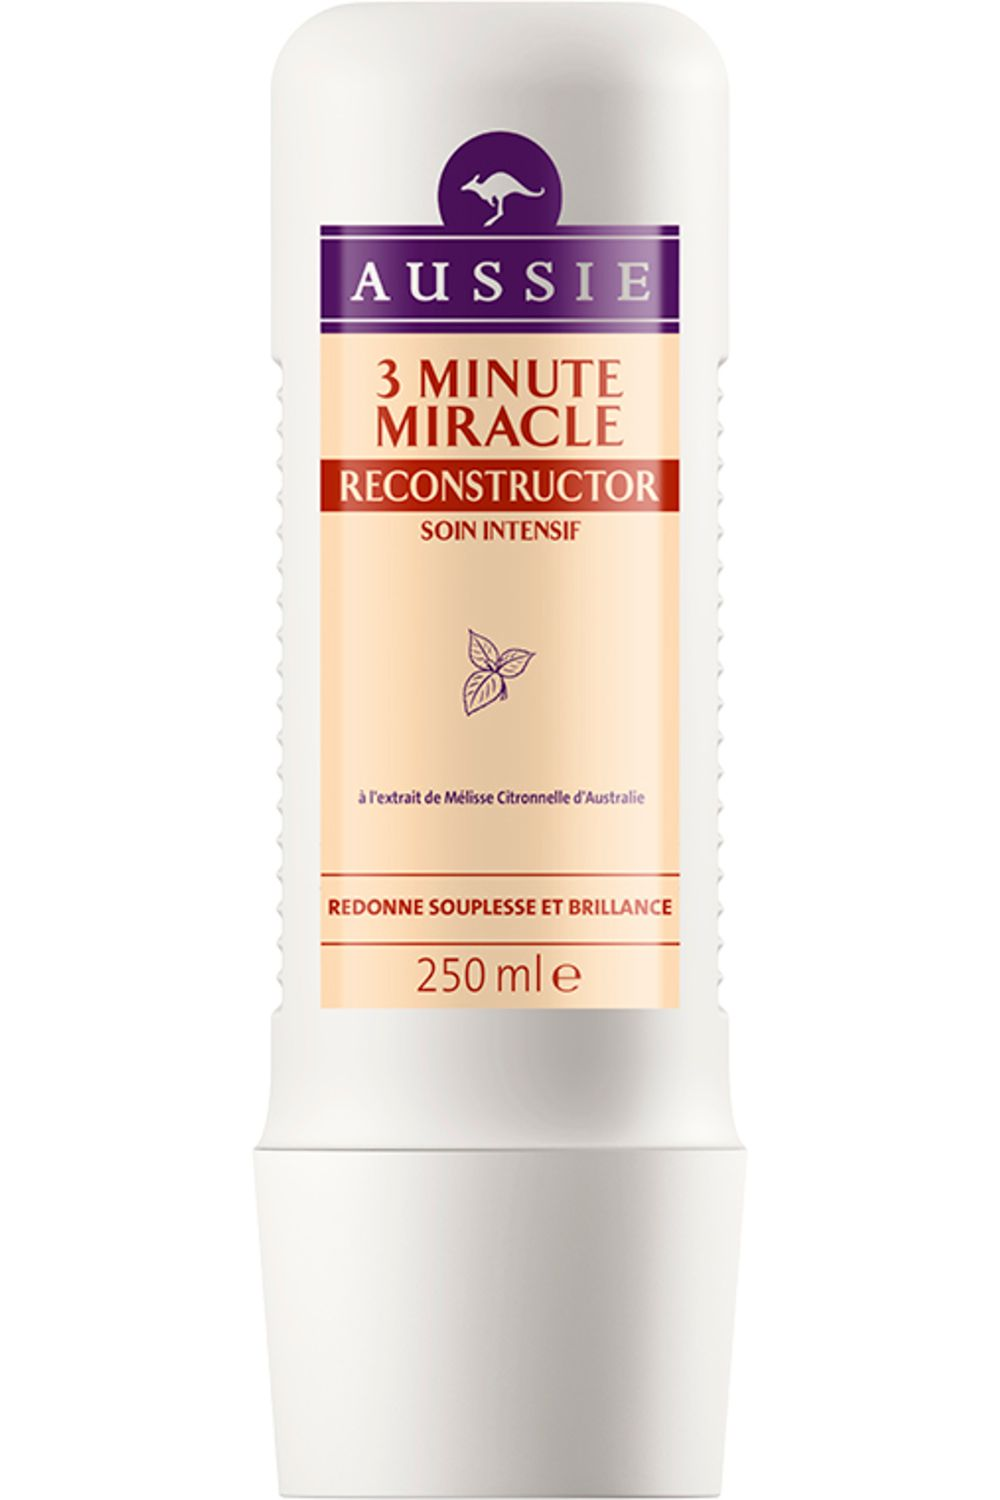 Blissim : AUSSIE - 3 Minute Miracle Reconstructor – Soin intensif - 3 Minute Miracle Reconstructor – Soin intensif